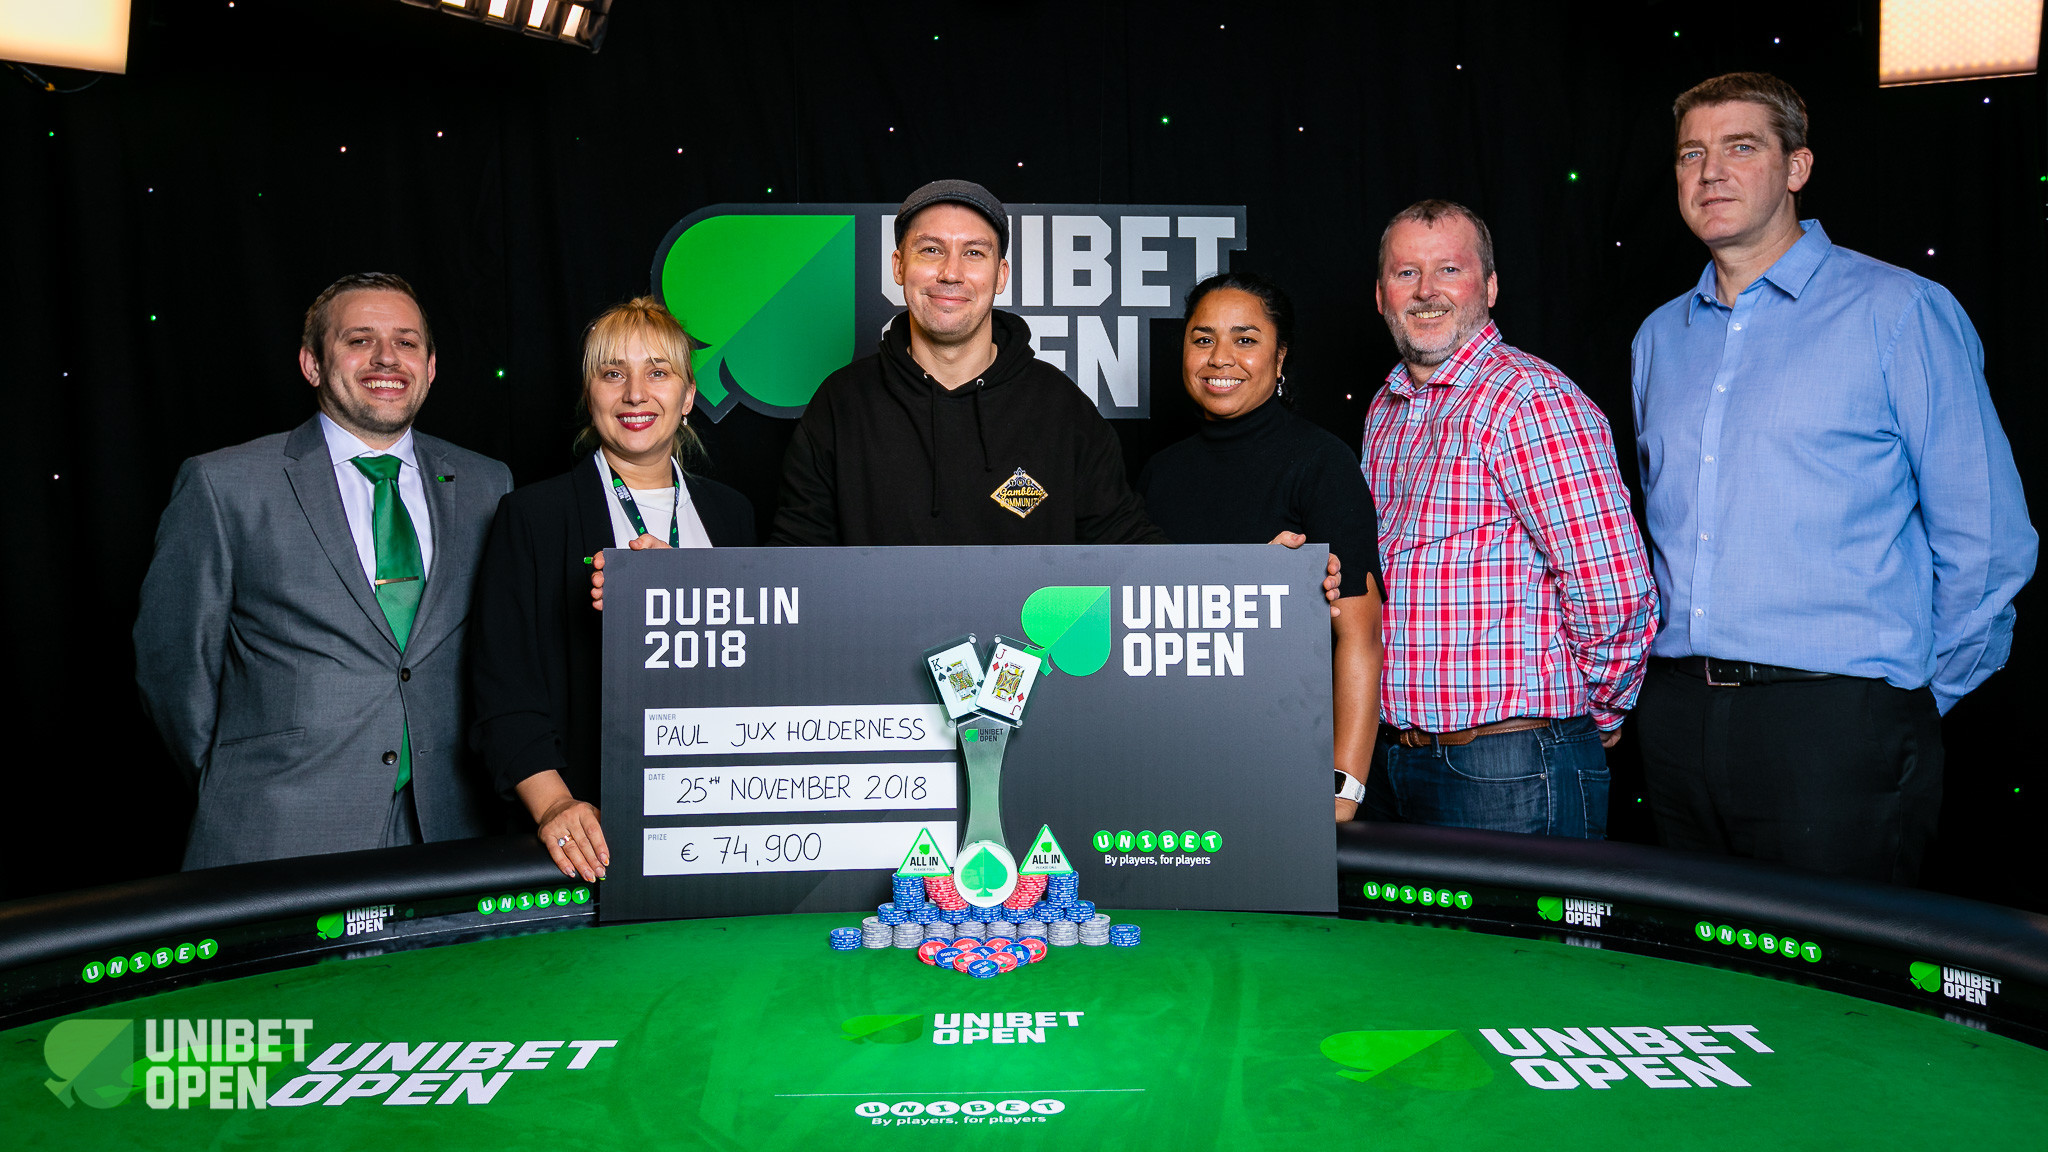 Paul Jux Holderness Wins the 2018 Unibet Open Dublin Main Event